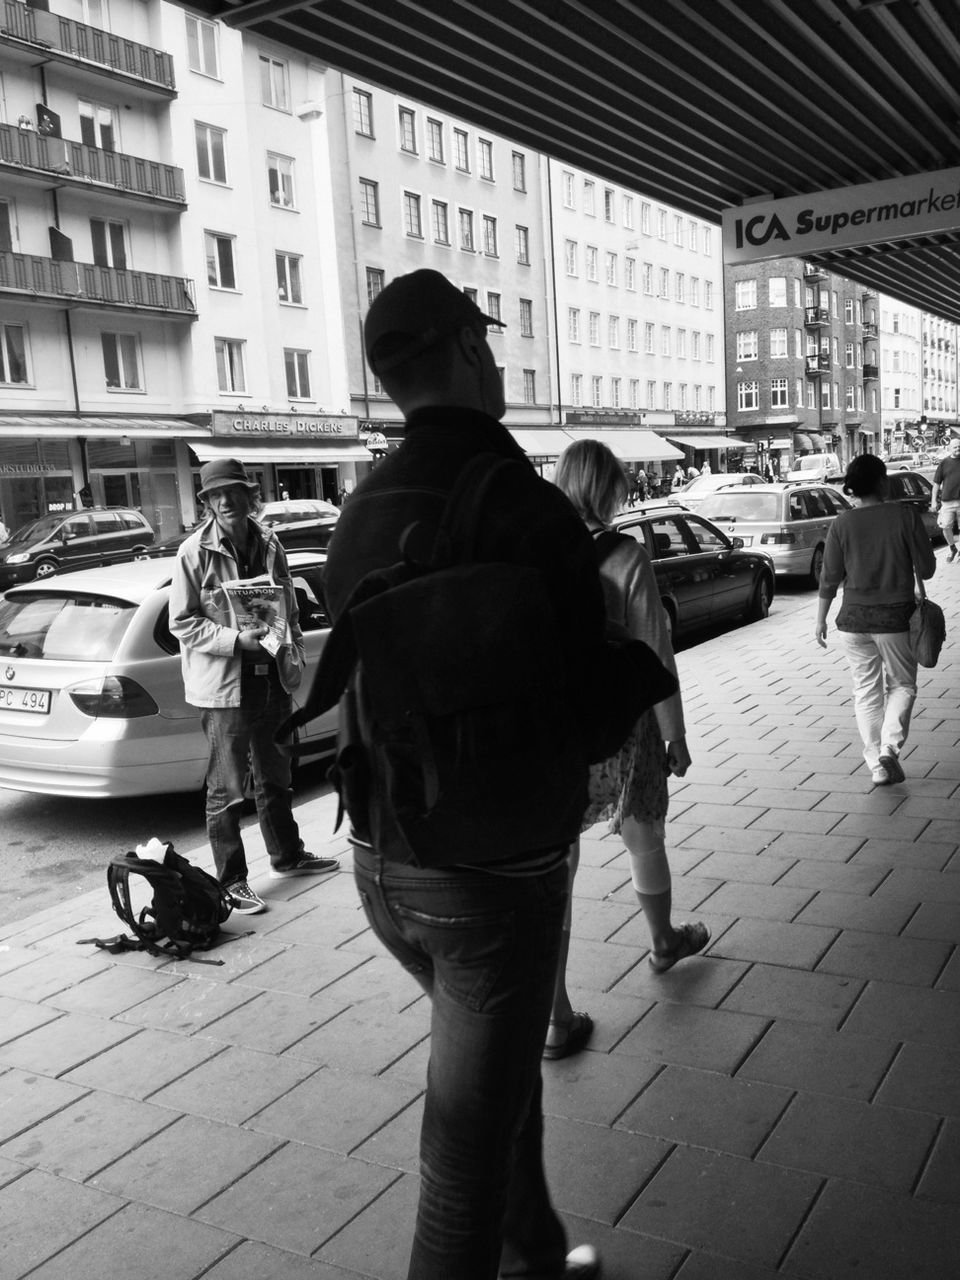 car, real people, transportation, mode of transport, walking, land vehicle, street, building exterior, city life, architecture, city, women, built structure, standing, men, lifestyles, outdoors, day, full length, large group of people, pedestrian, adult, people